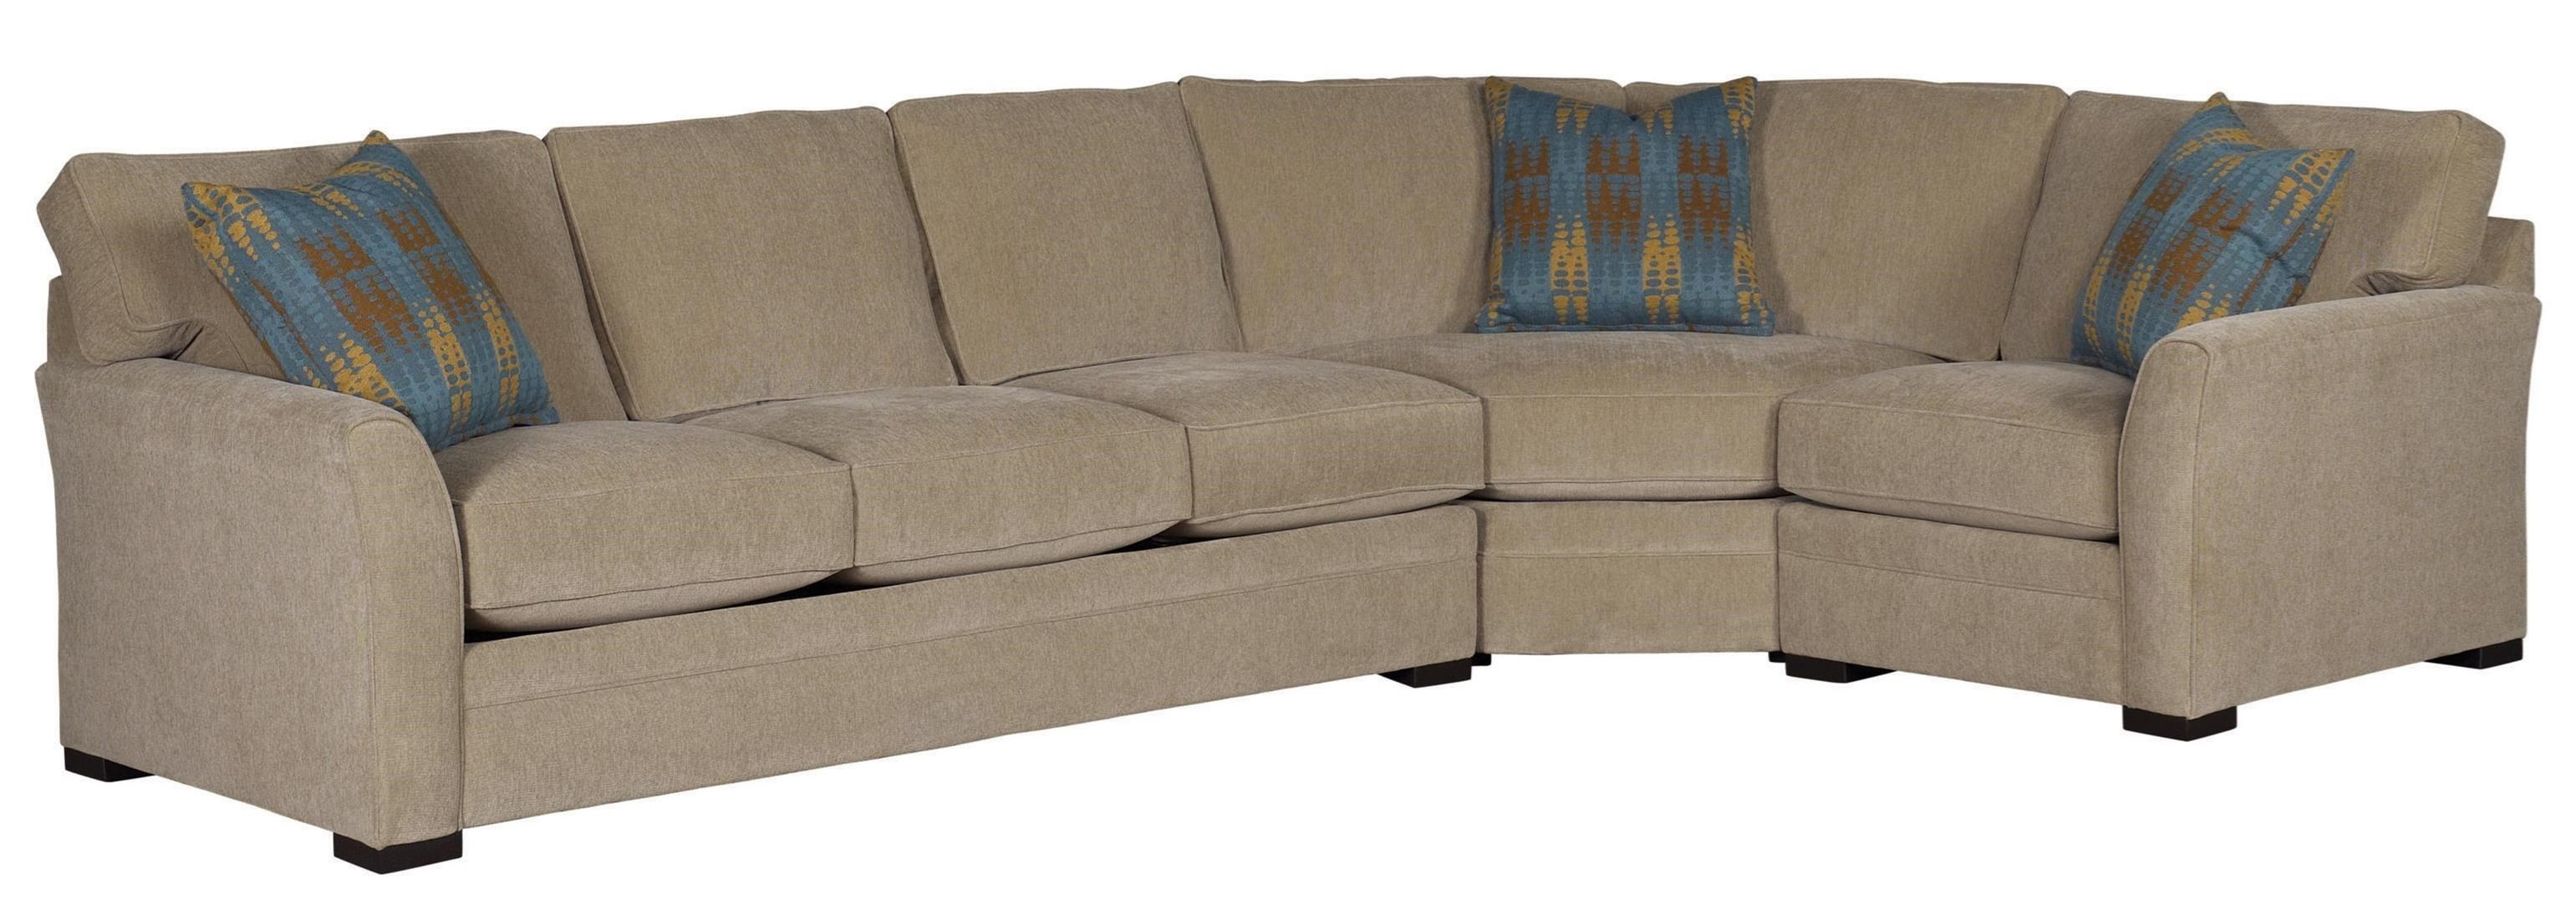 Scorpio Sectional Sofa by Jonathan Louis at Thornton Furniture